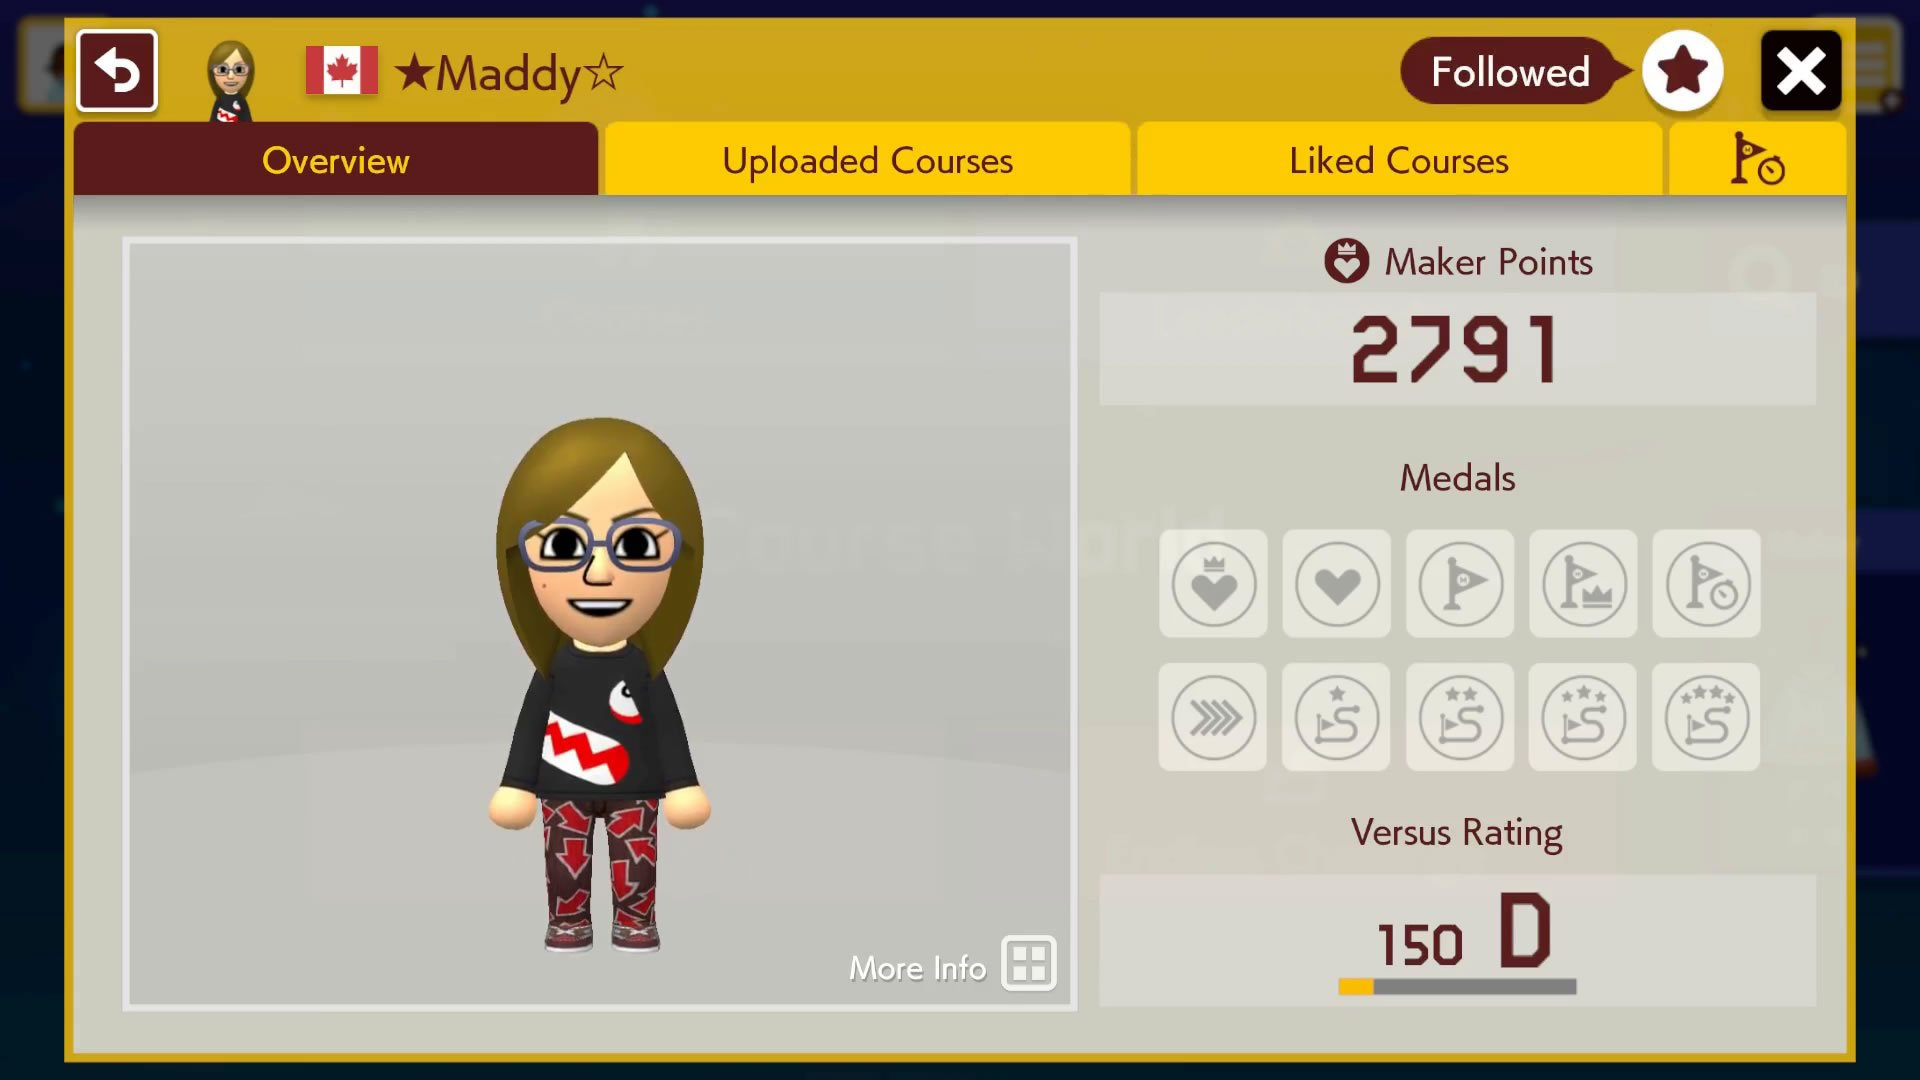 How to follow people in Super Mario Maker 2 - favorite button